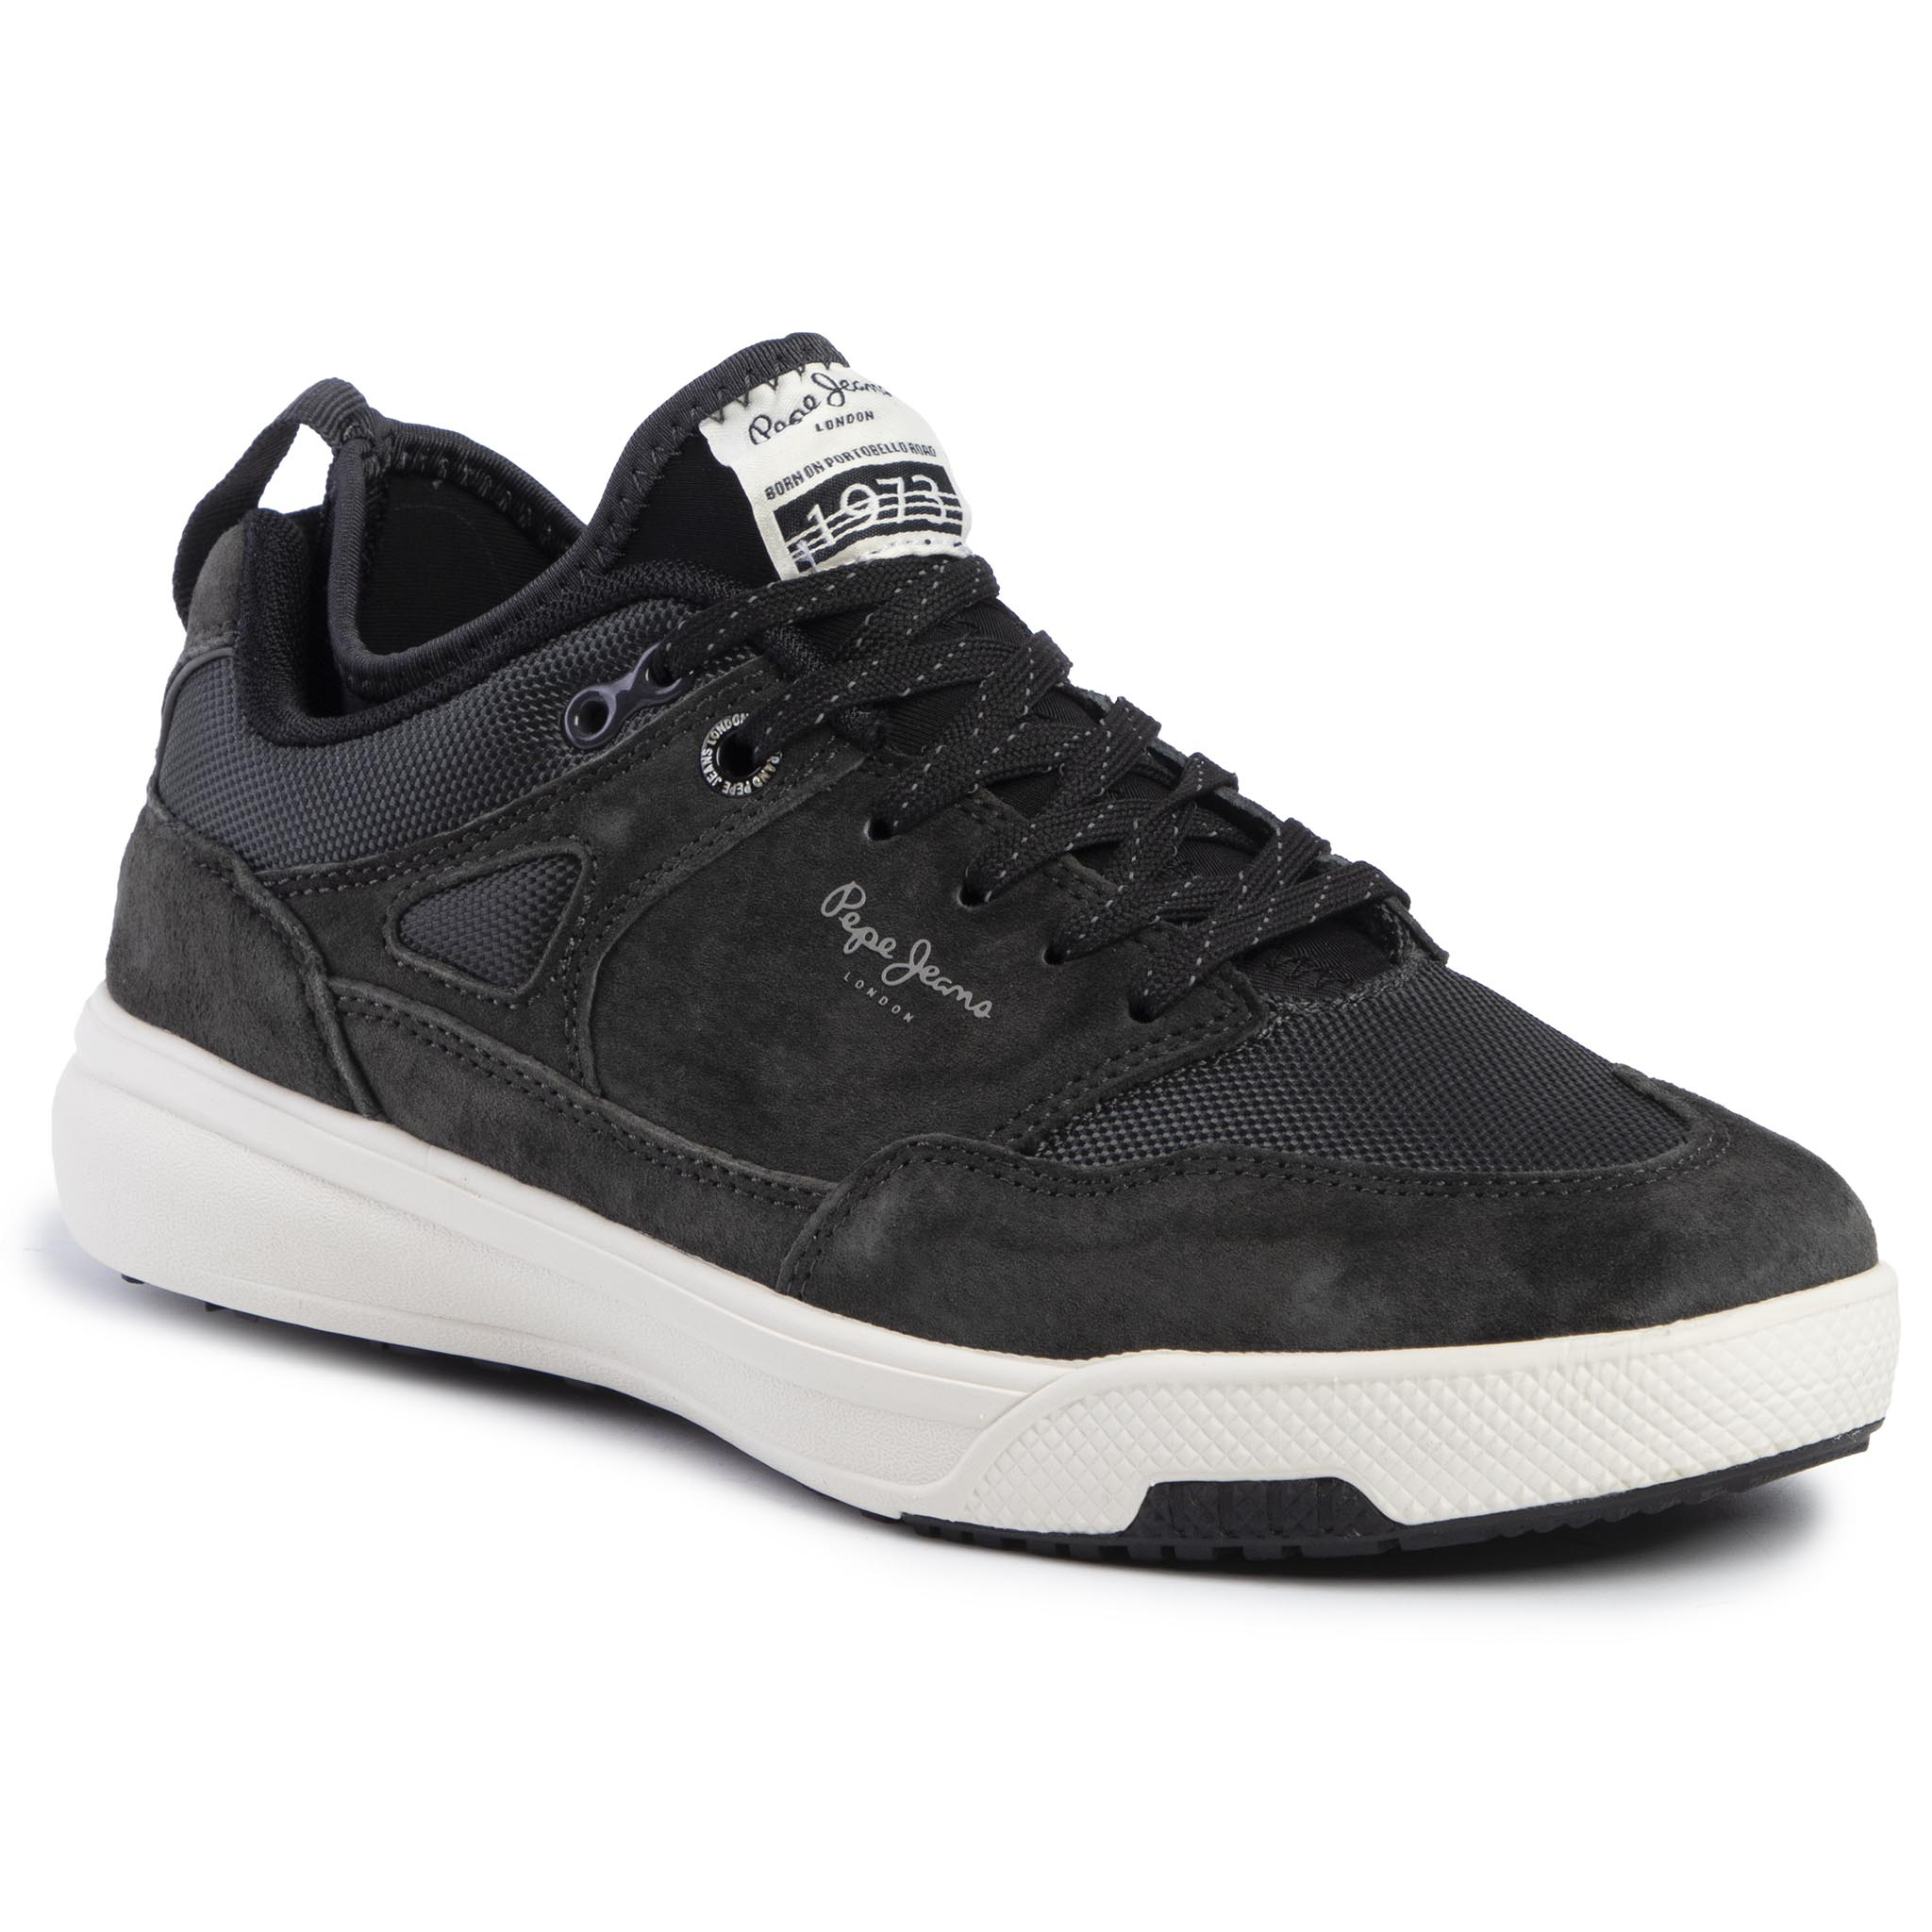 Sneakers PEPE JEANS - Slate Pro 01 PMS30571 Antracite 982